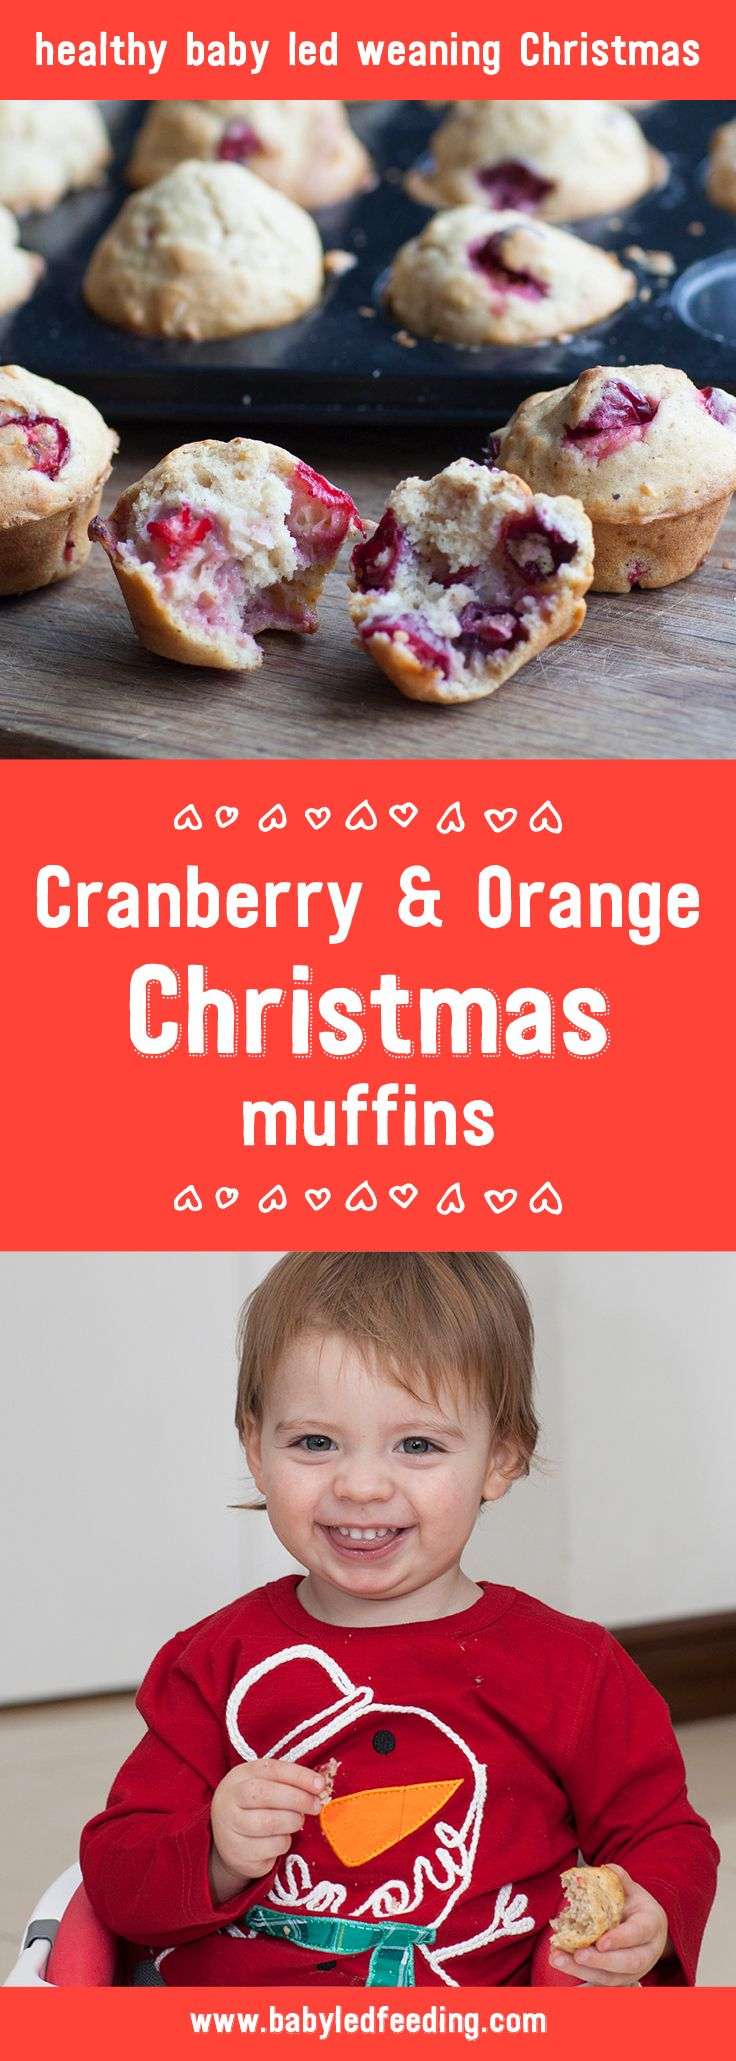 These yummy Cranberry & Orange Christmas Muffins are a healthy Christmas recipe for baby led weaning. Full of goodness & perfect for Santa!